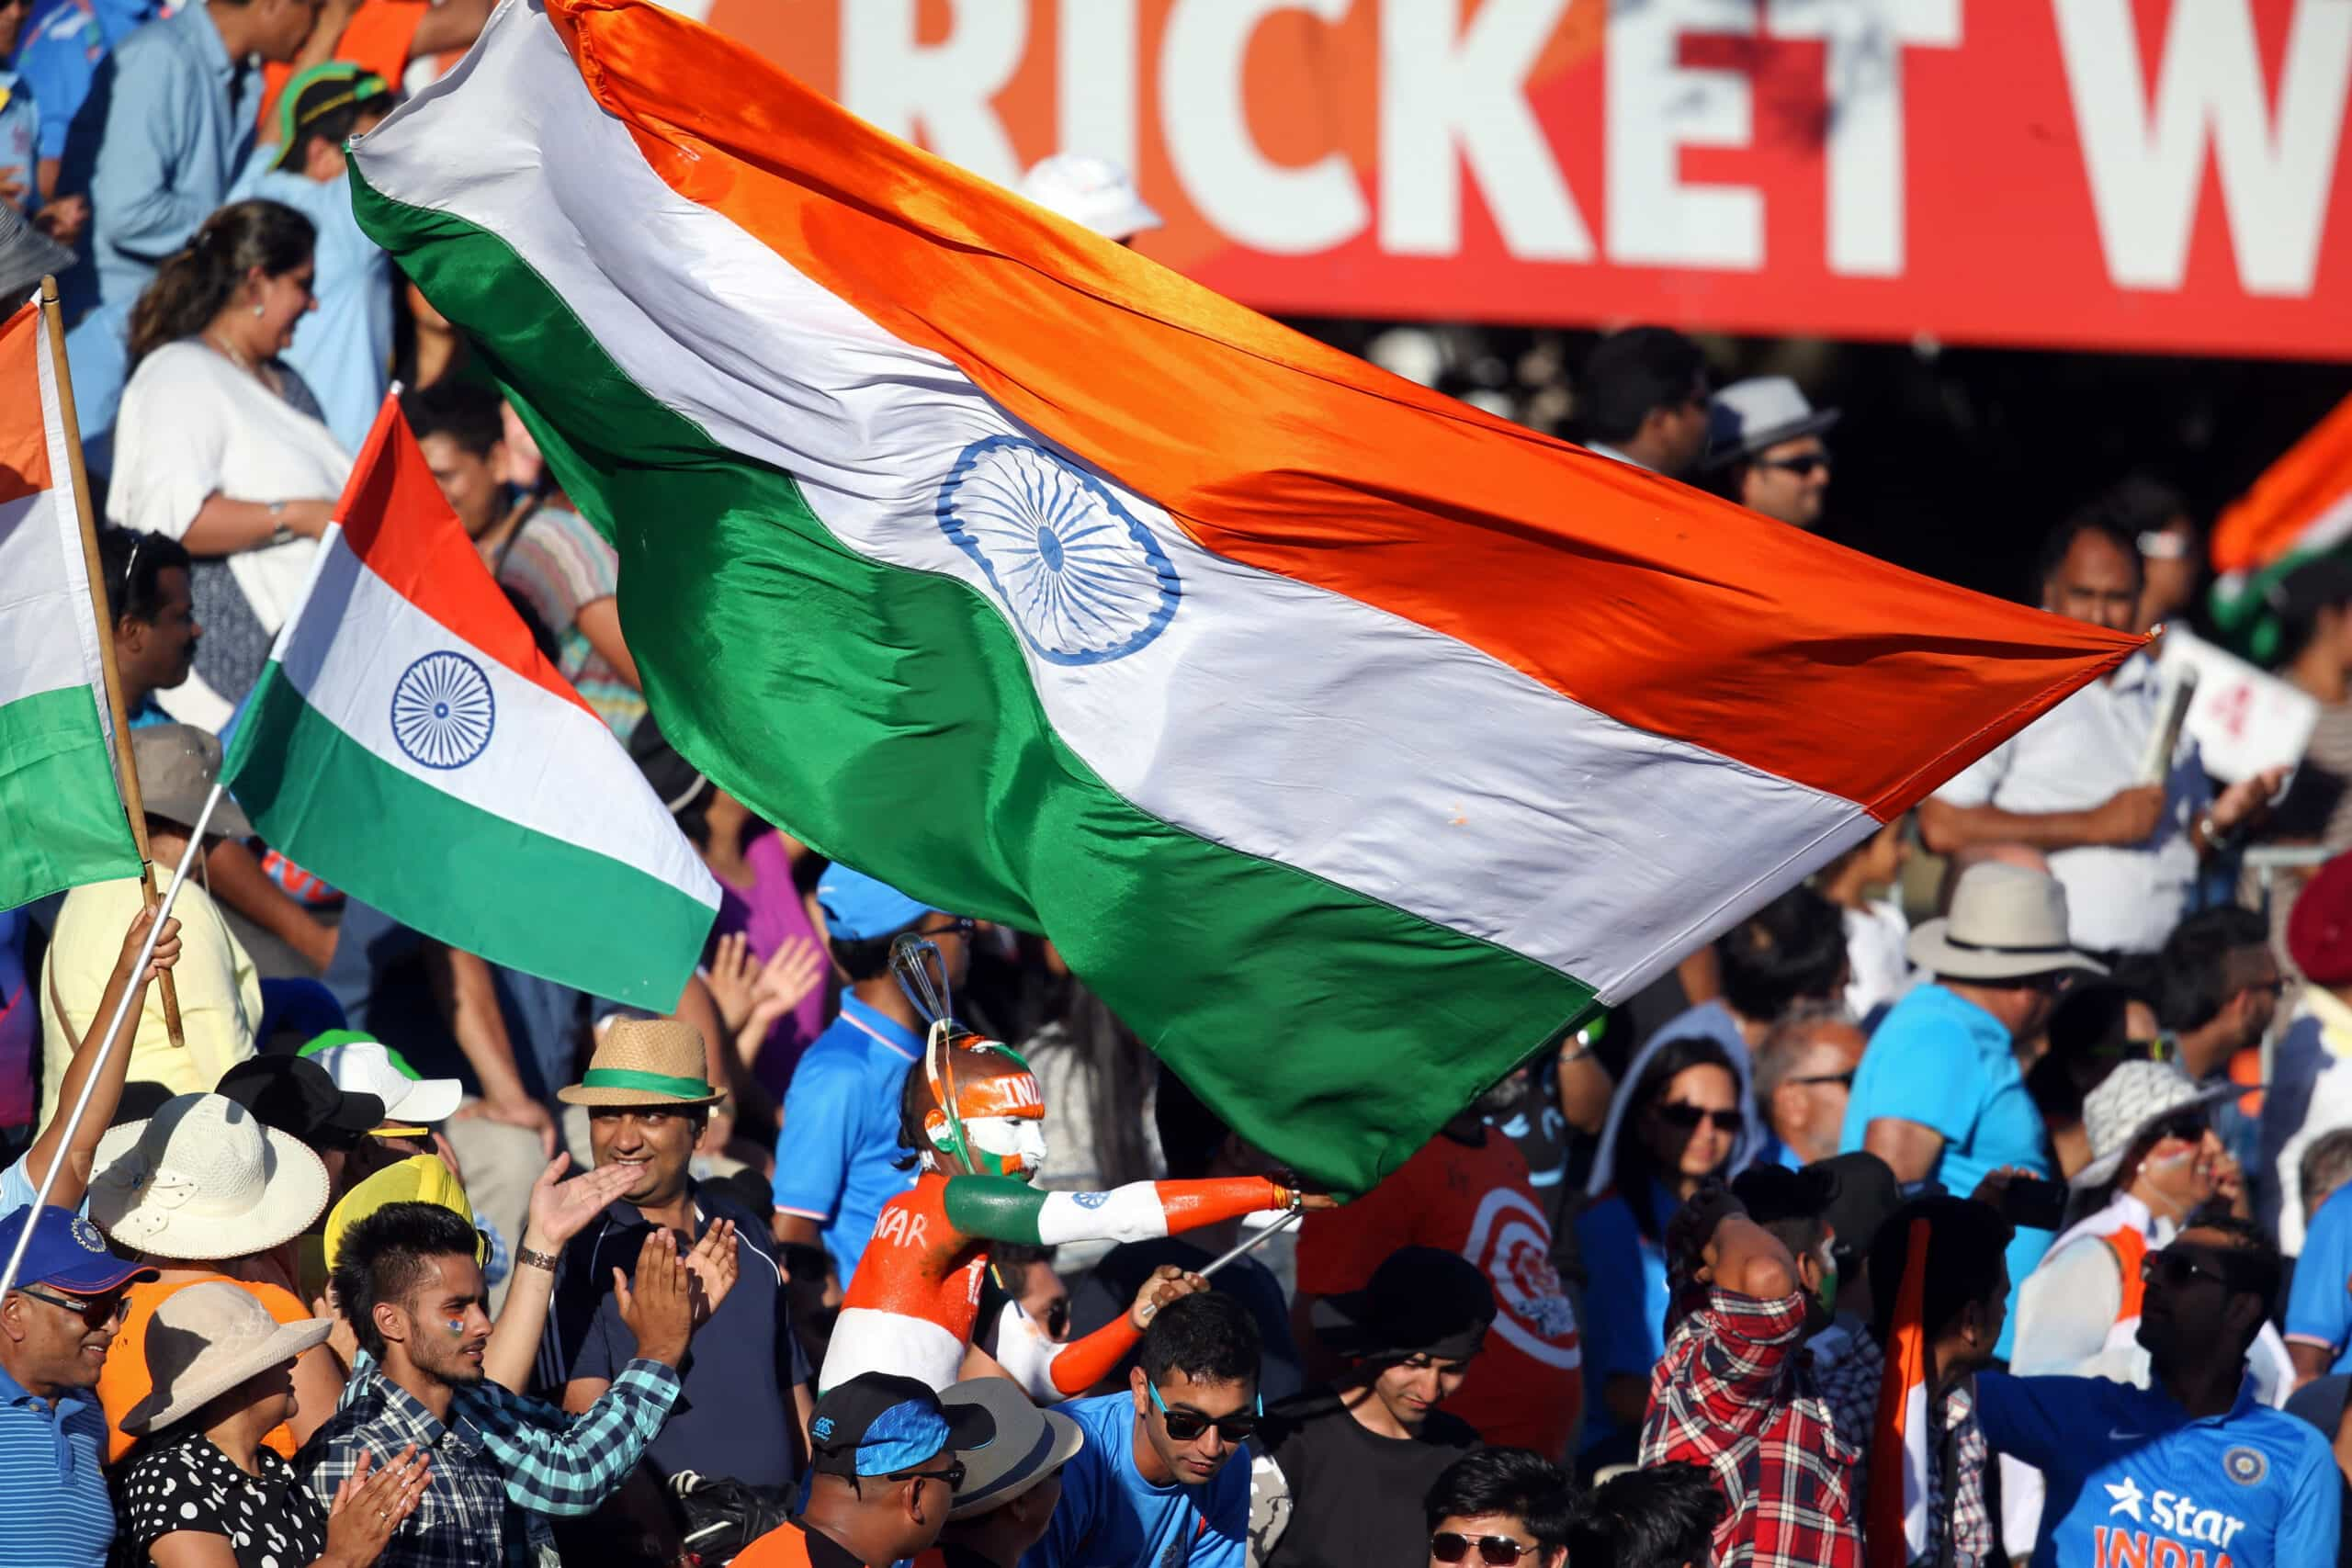 Indian cricket fans celebrating and flying a huge flag of India